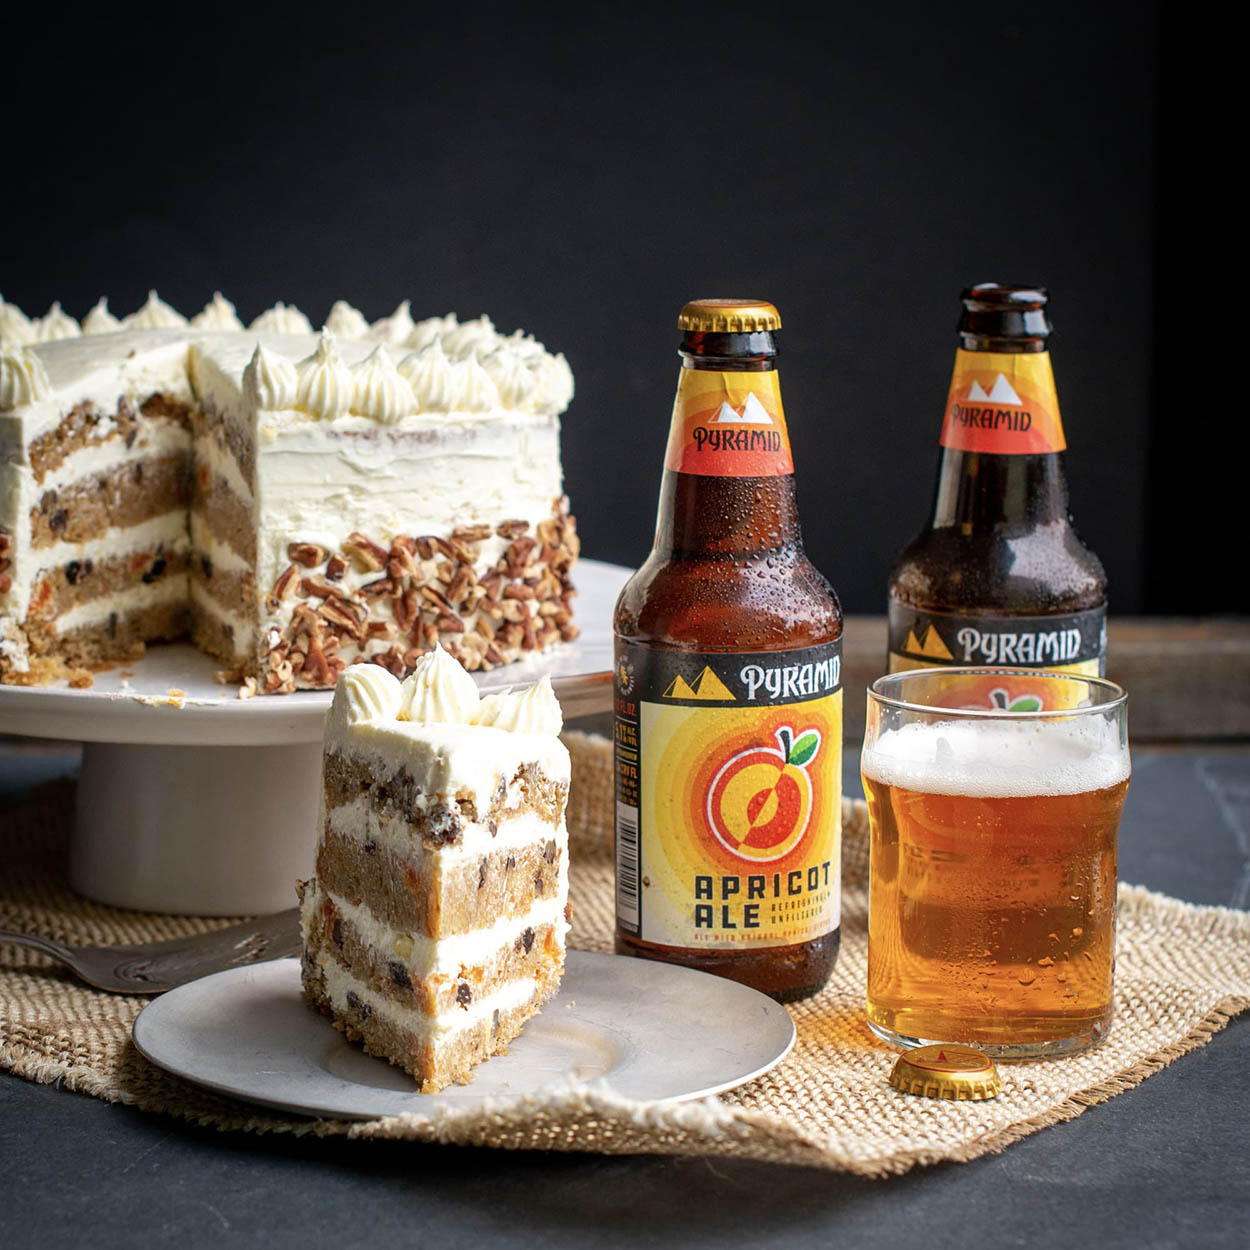 A slice of homemade carrot cake served with a glass of apricot ale, the dessert served in front of the whole carrot cake, tastefully decorated with a cream cheese pineapple frosting, two bottles of pyramid apricot ale linger to the side of the photo paying homage to the cake's signature ingredient - Pyramid Apricot Ale